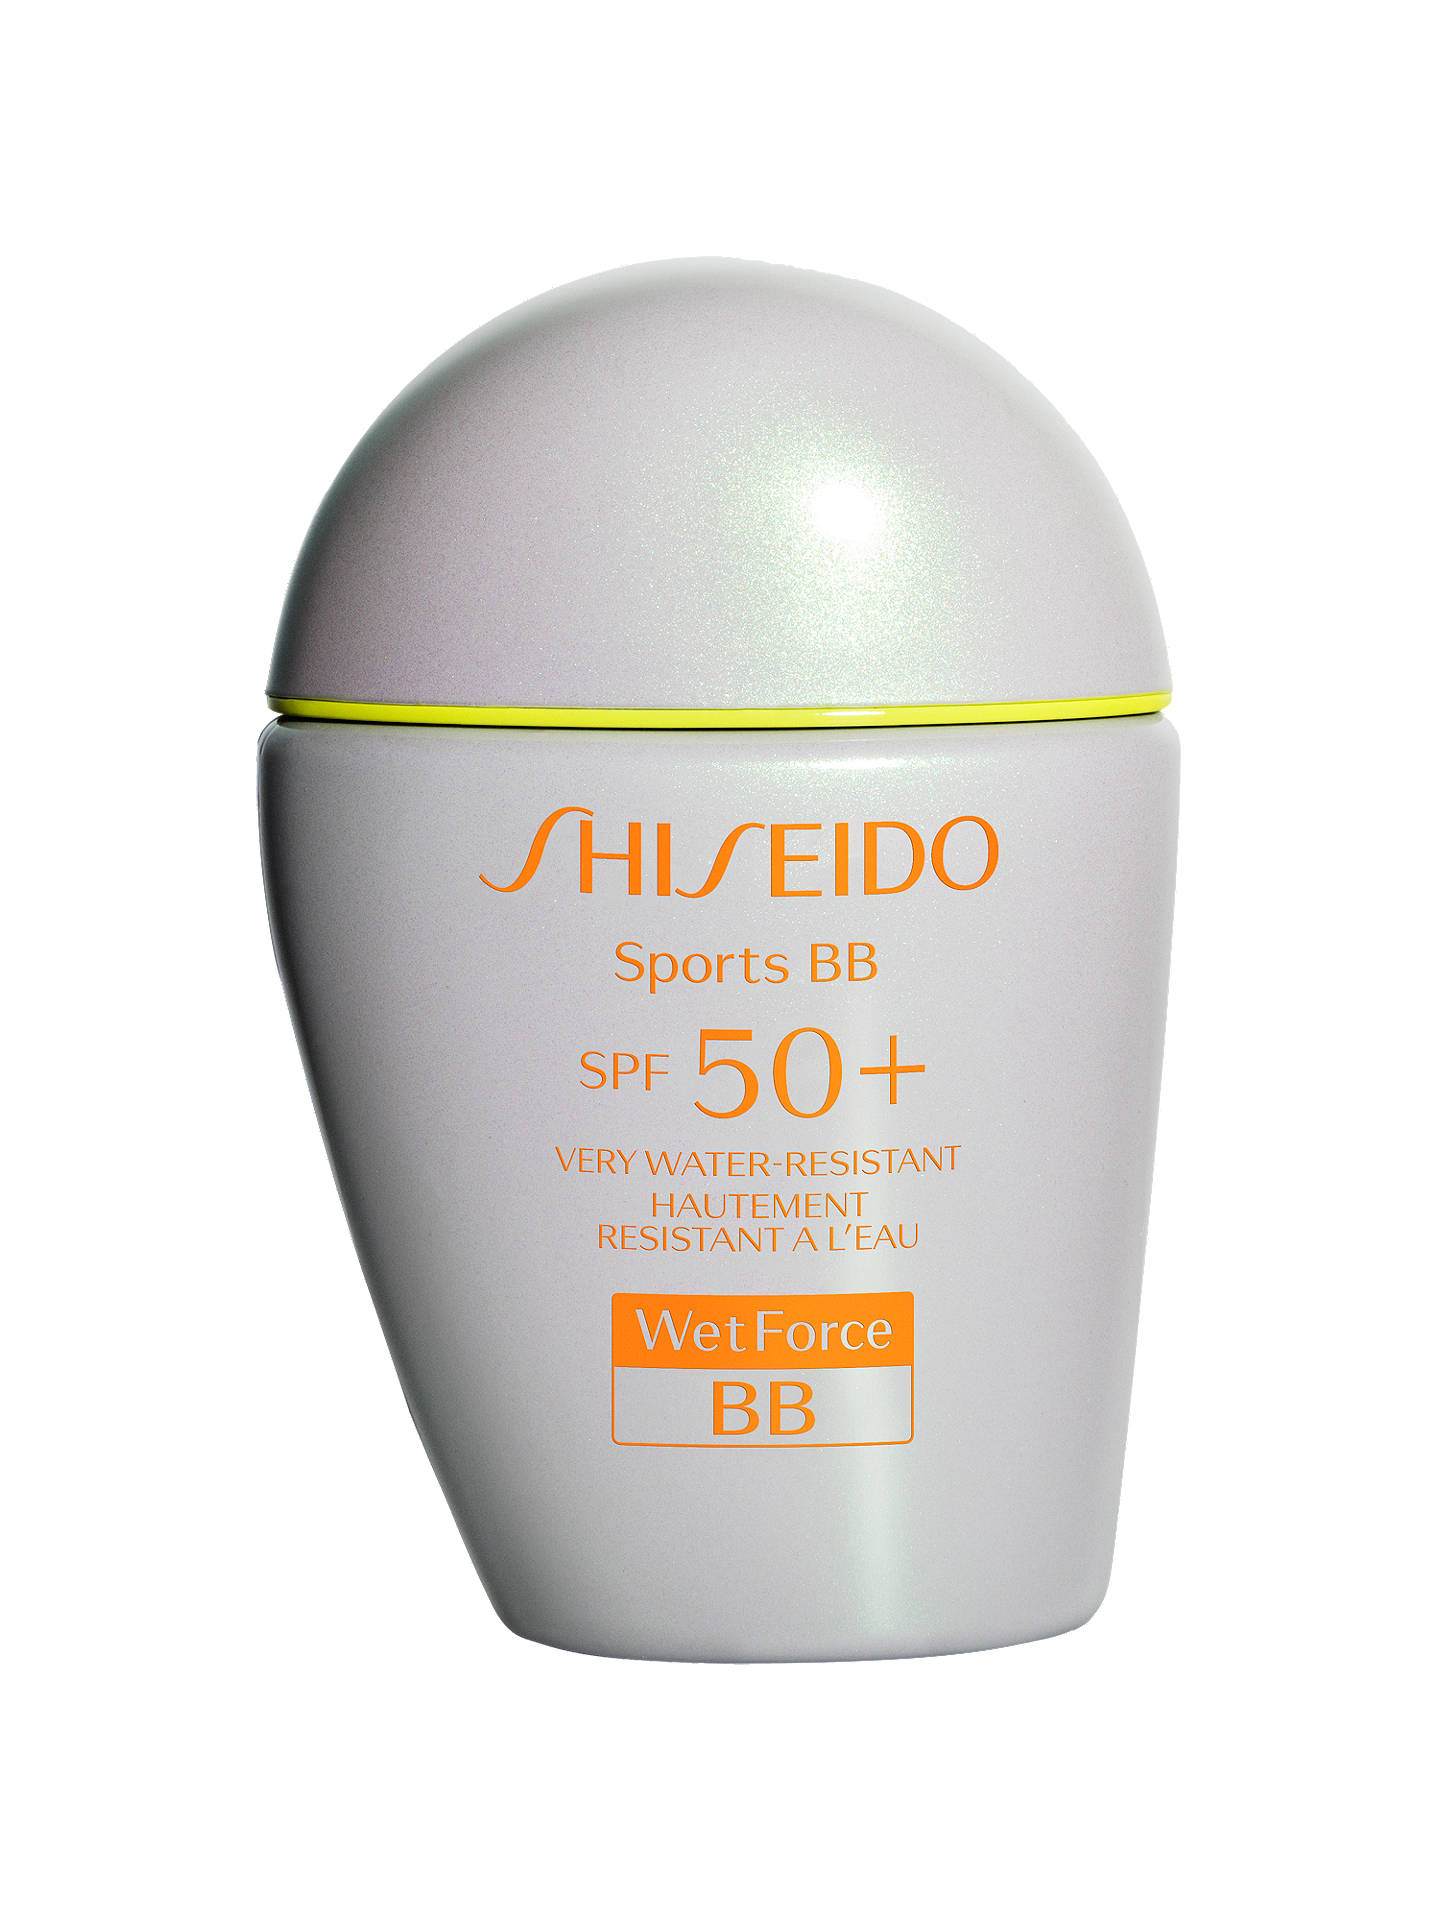 Buy Shiseido WetForce Sports BB SPF 50+ Tinted Moisturiser, Light Online at johnlewis.com